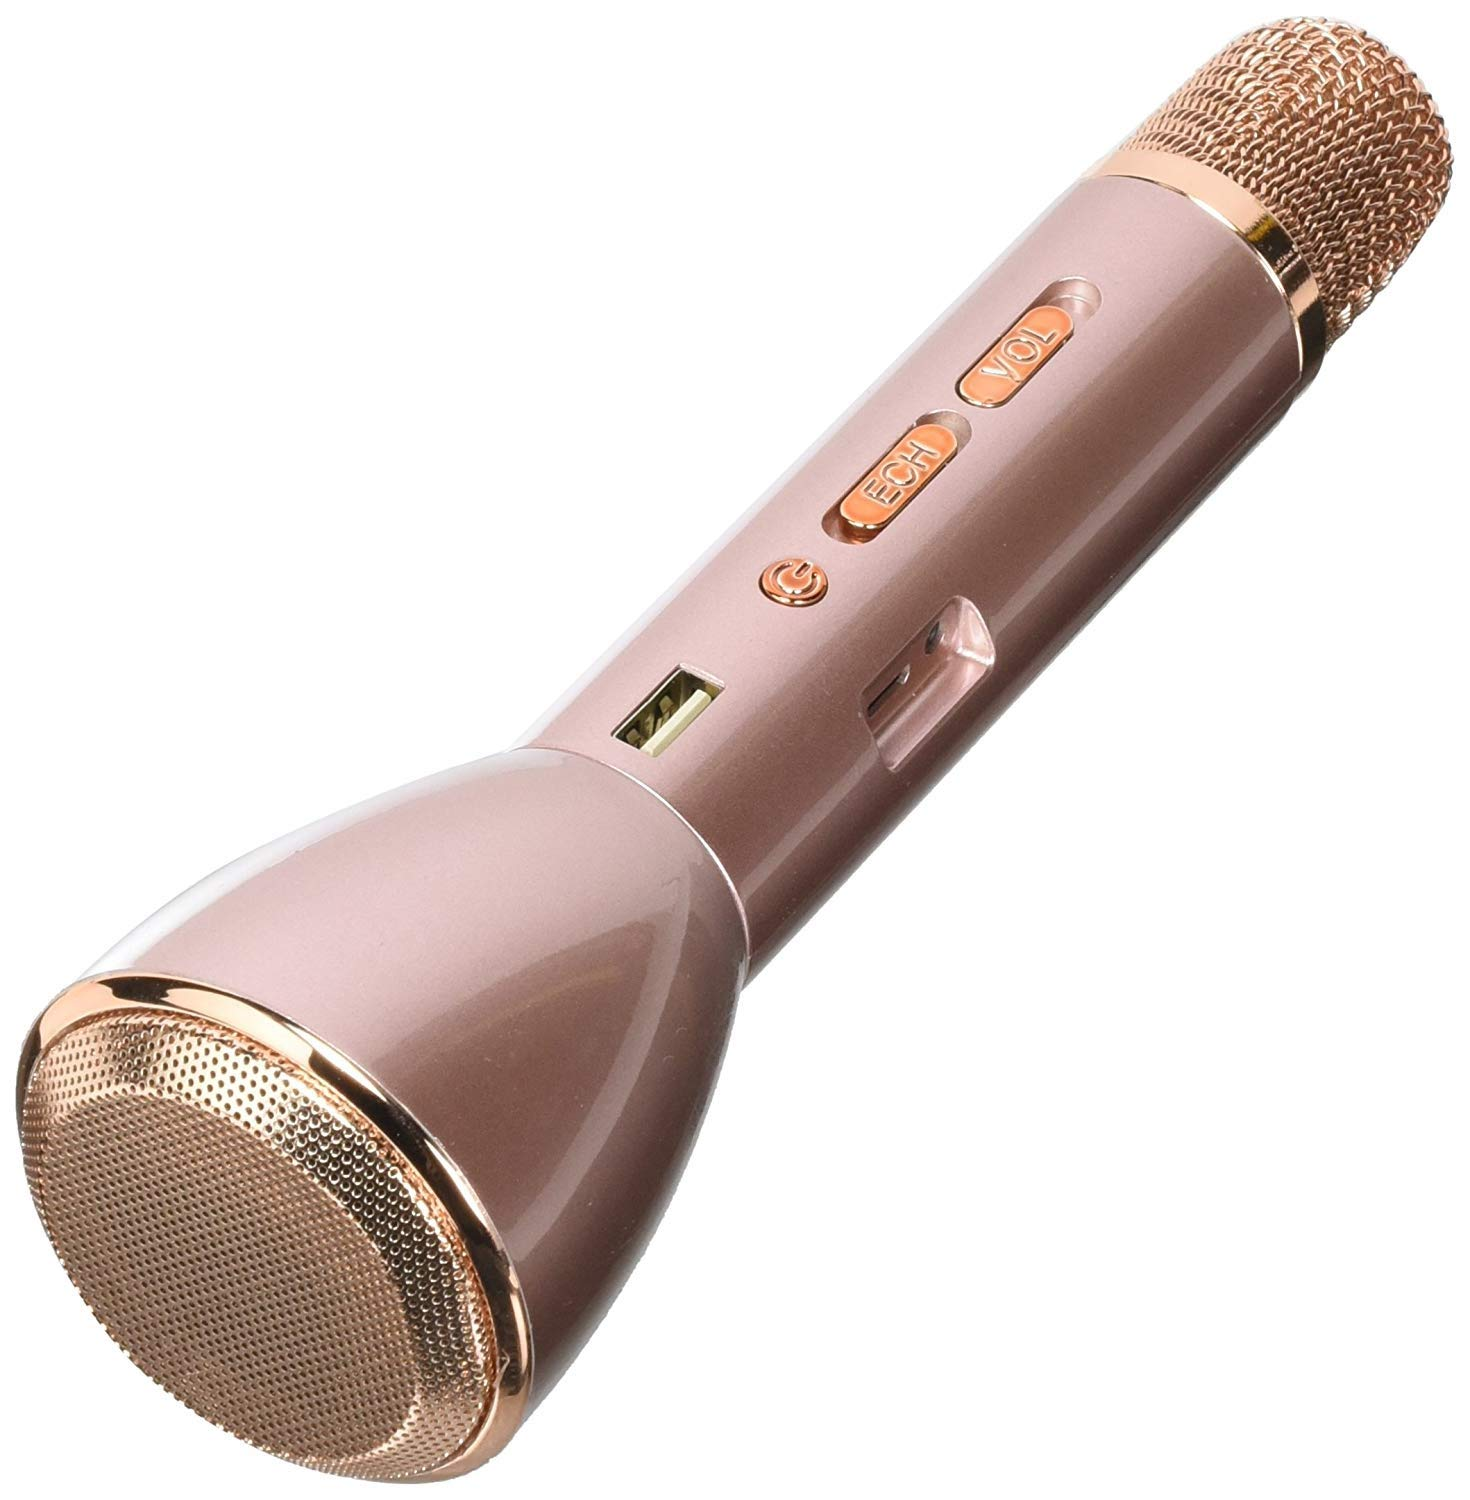 YSINOBEAR Wireless Microphone Karaoke(3rd Generation), 3-in-1 Bluetooth Karaoke Machine KTV for Apple iPhone Android Smartphone and Pc Sound Microphone